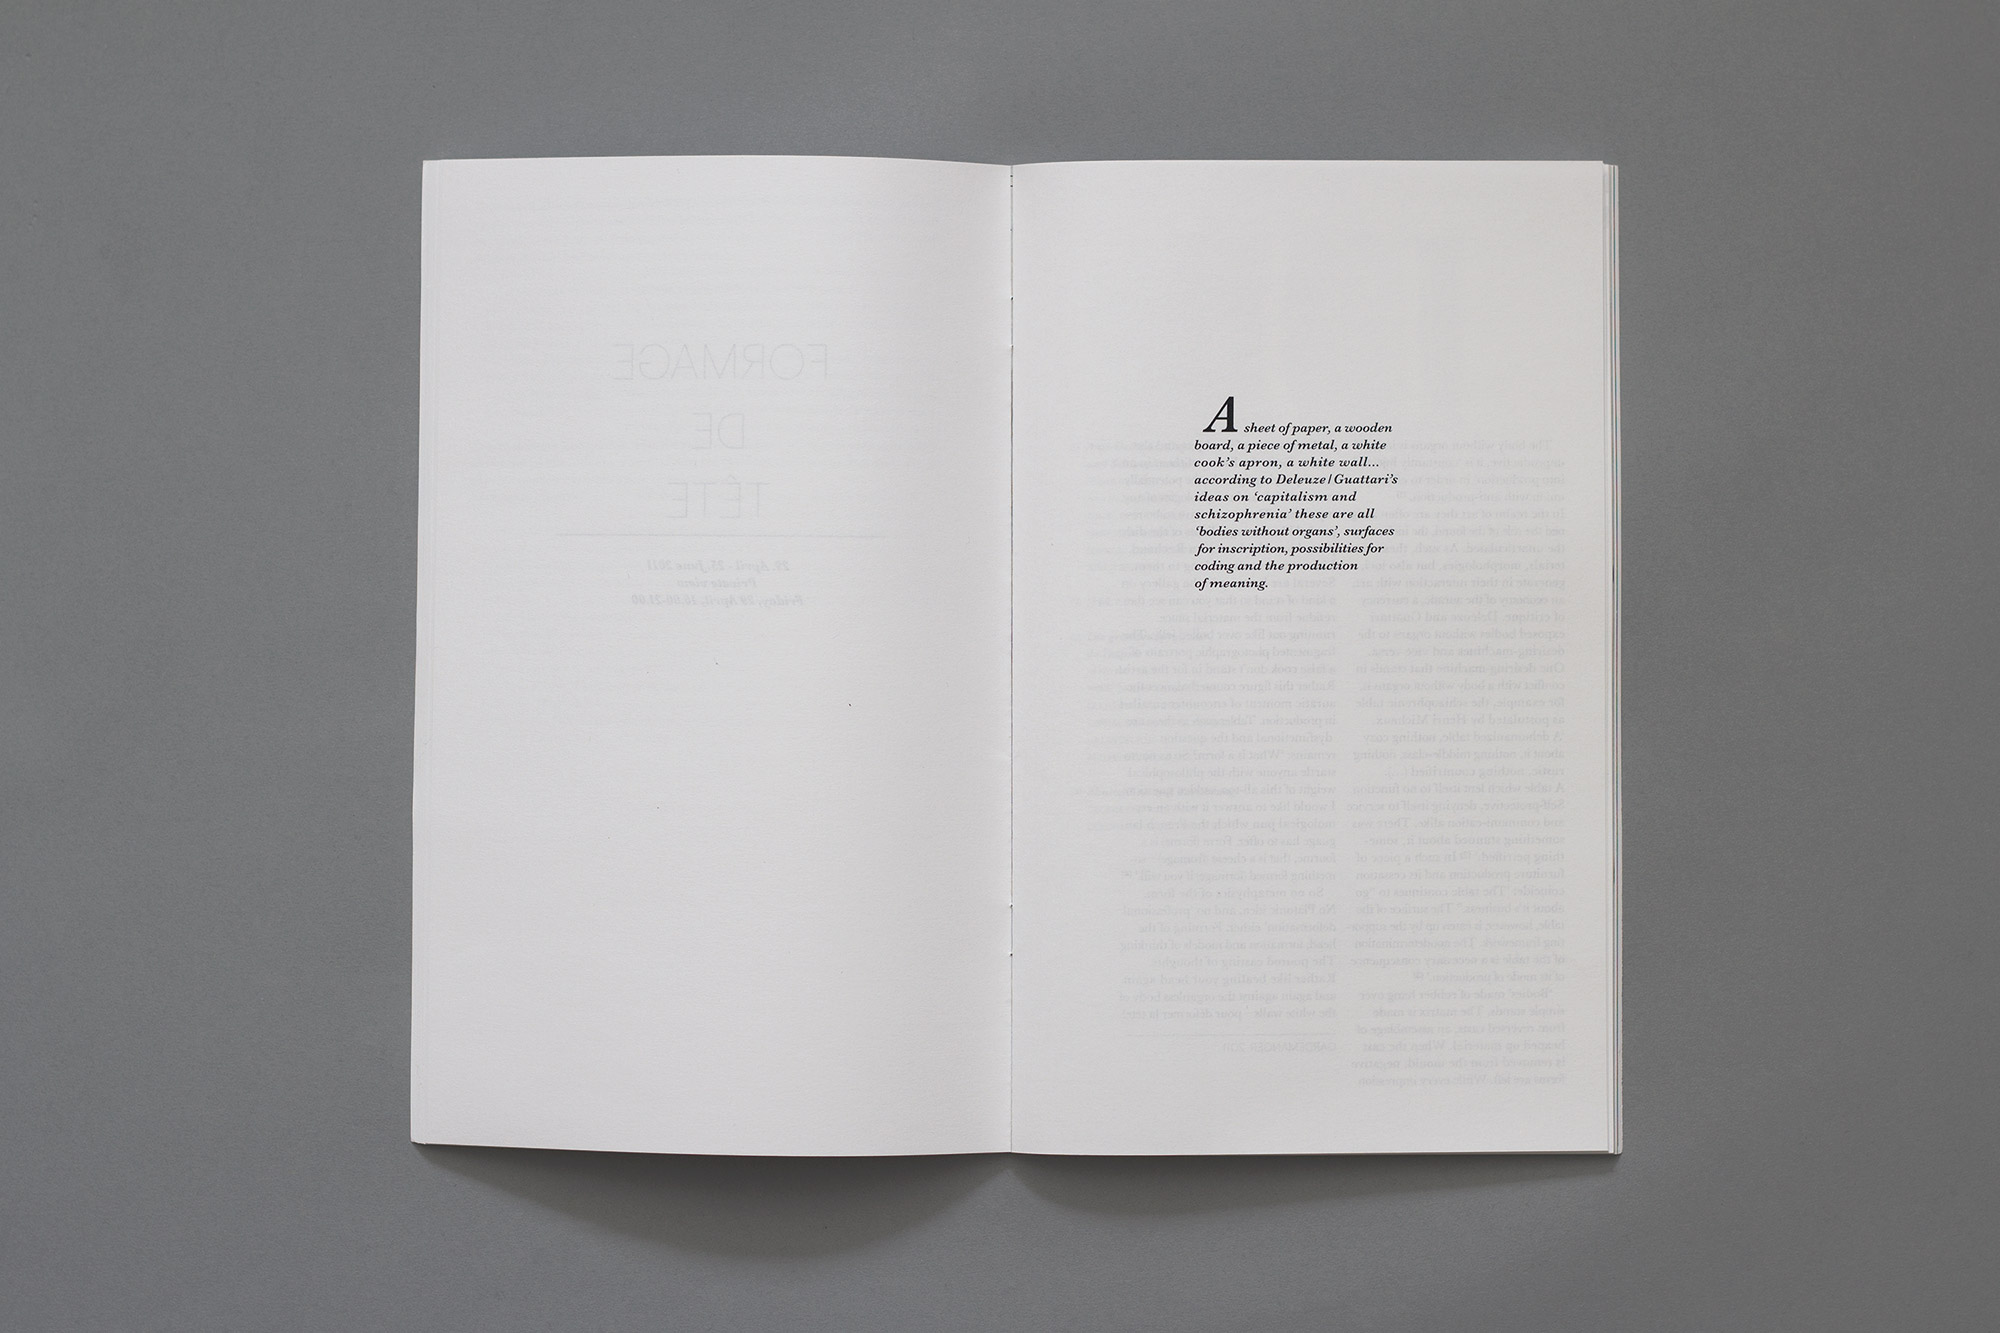 White apron meaning - Artist Book Nairy Baghramian